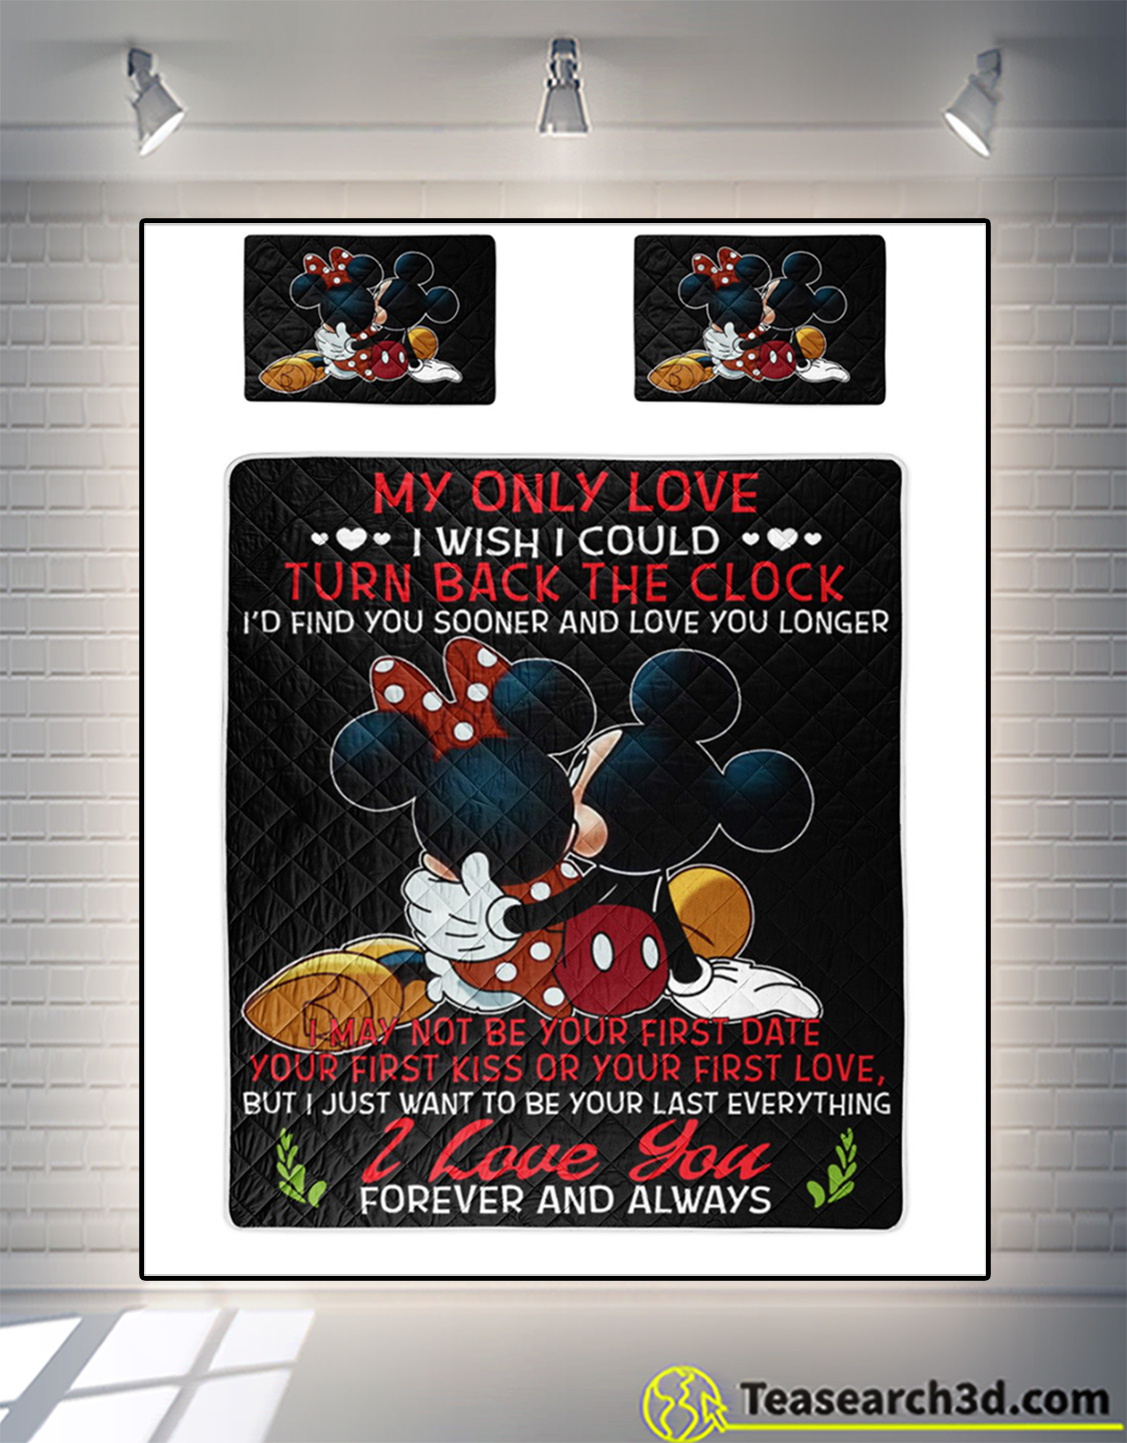 Mickey and minnie my only love I wish I could turn back the clock quilt bed set 2